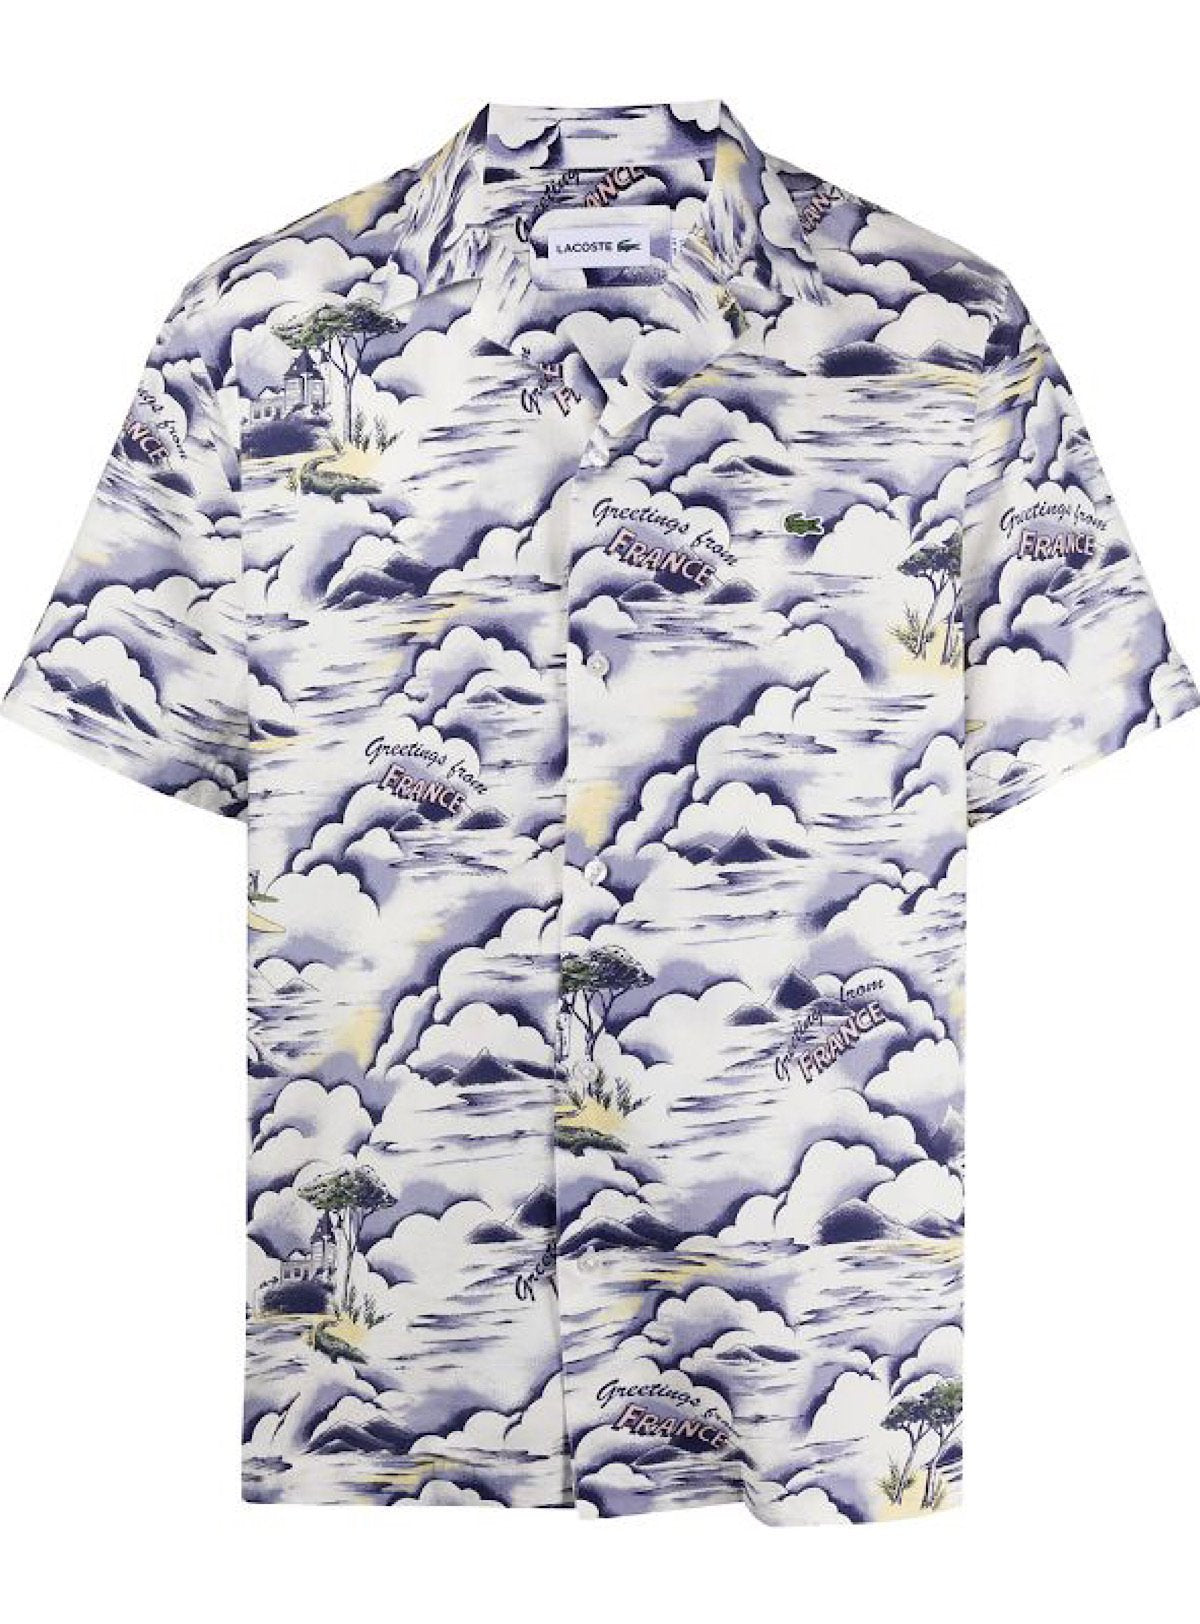 Lacoste Shirt - Tropical - CH7944